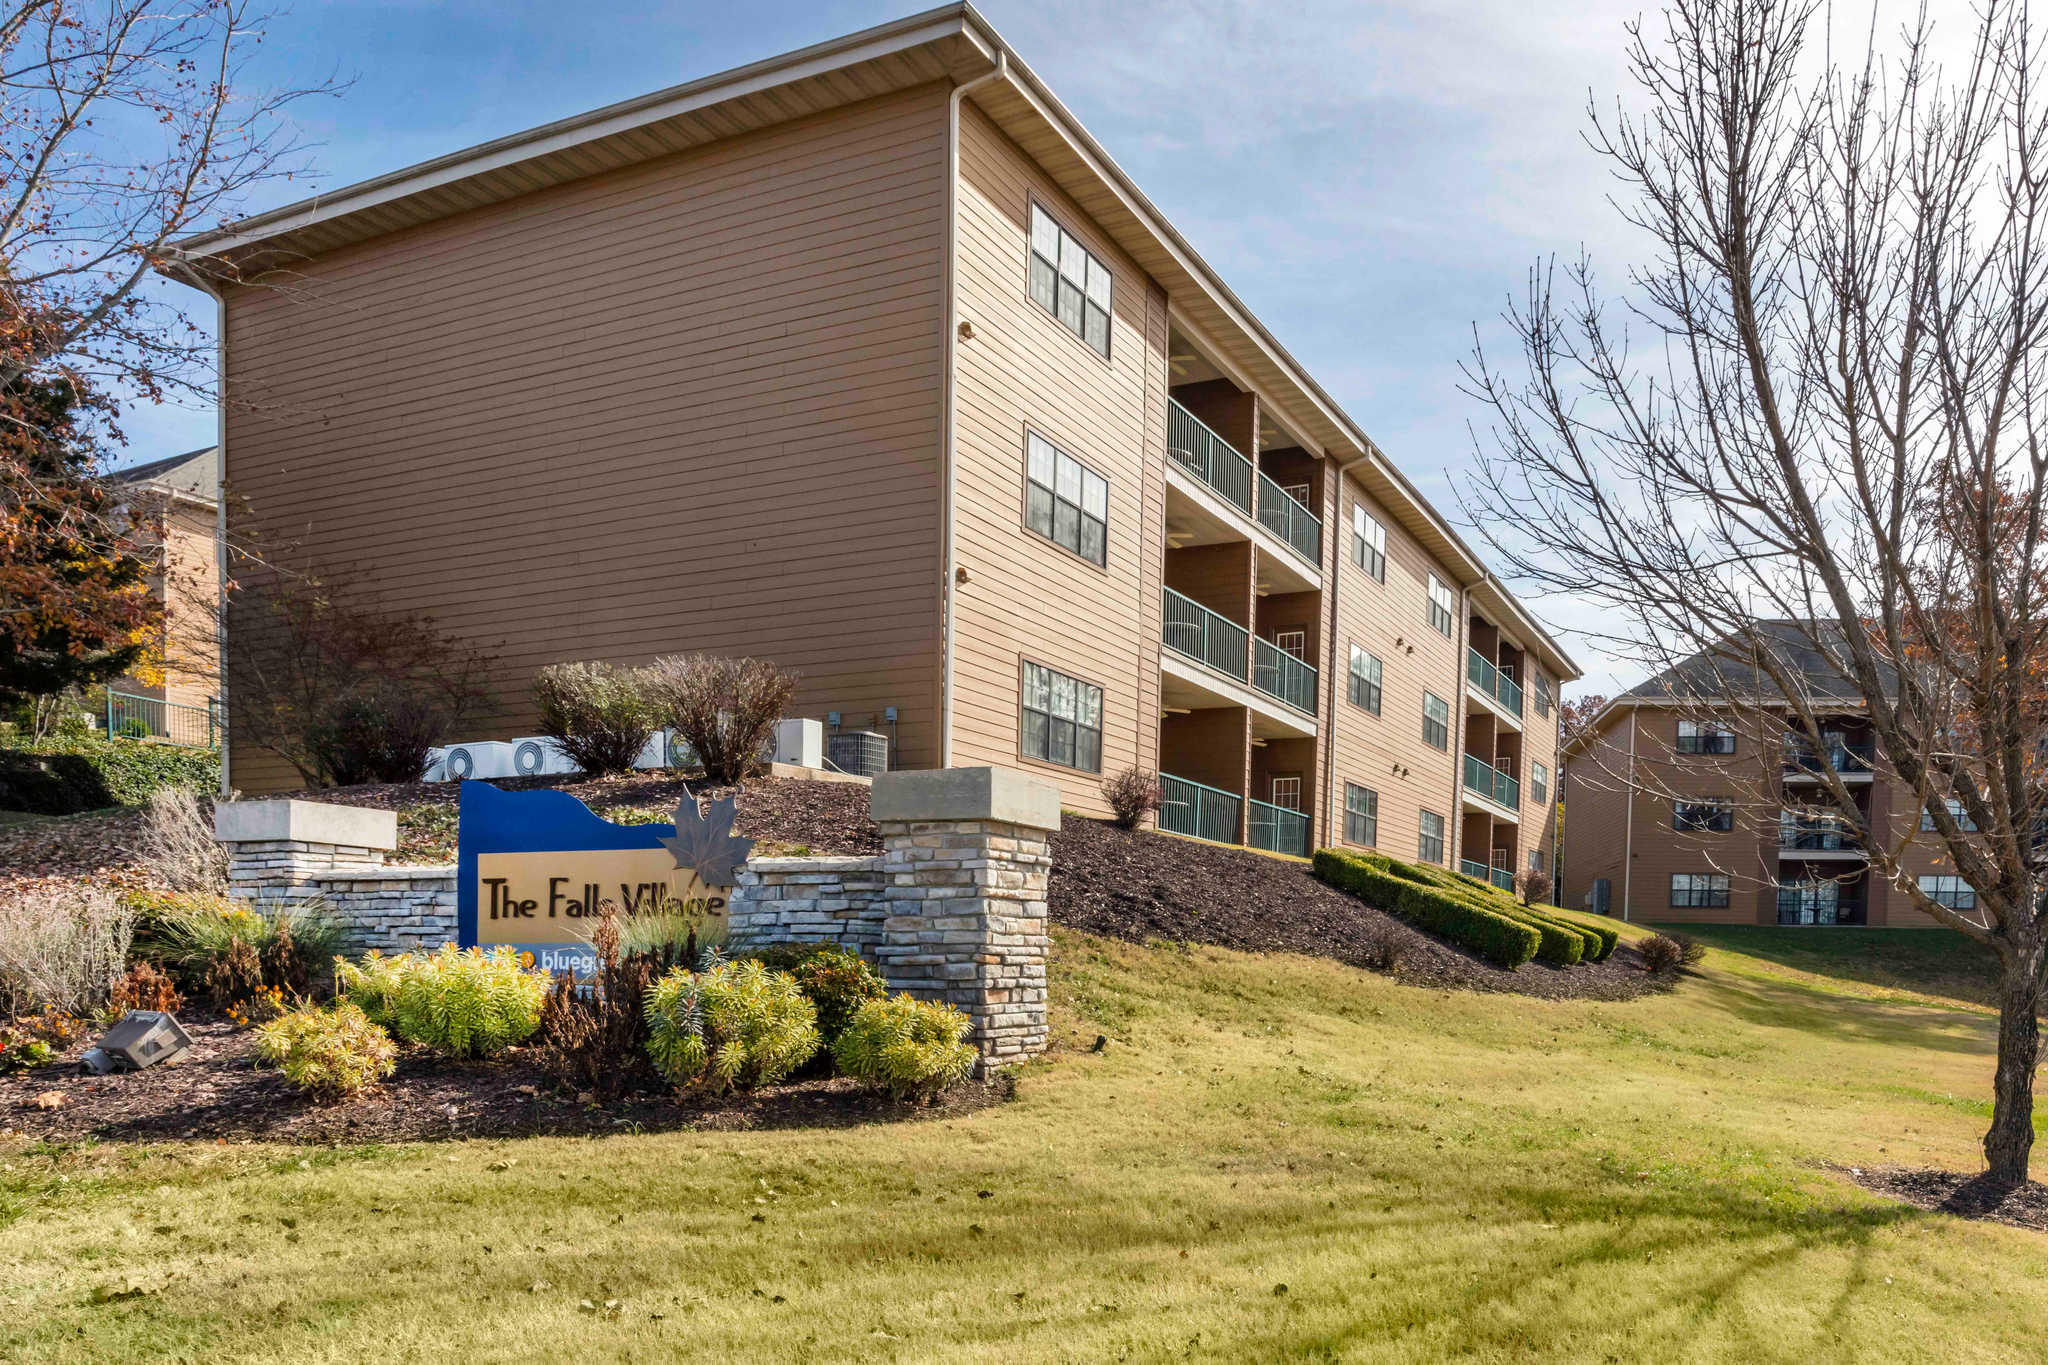 Bluegreen Vacations The Falls Village, an Ascend Resort image 3